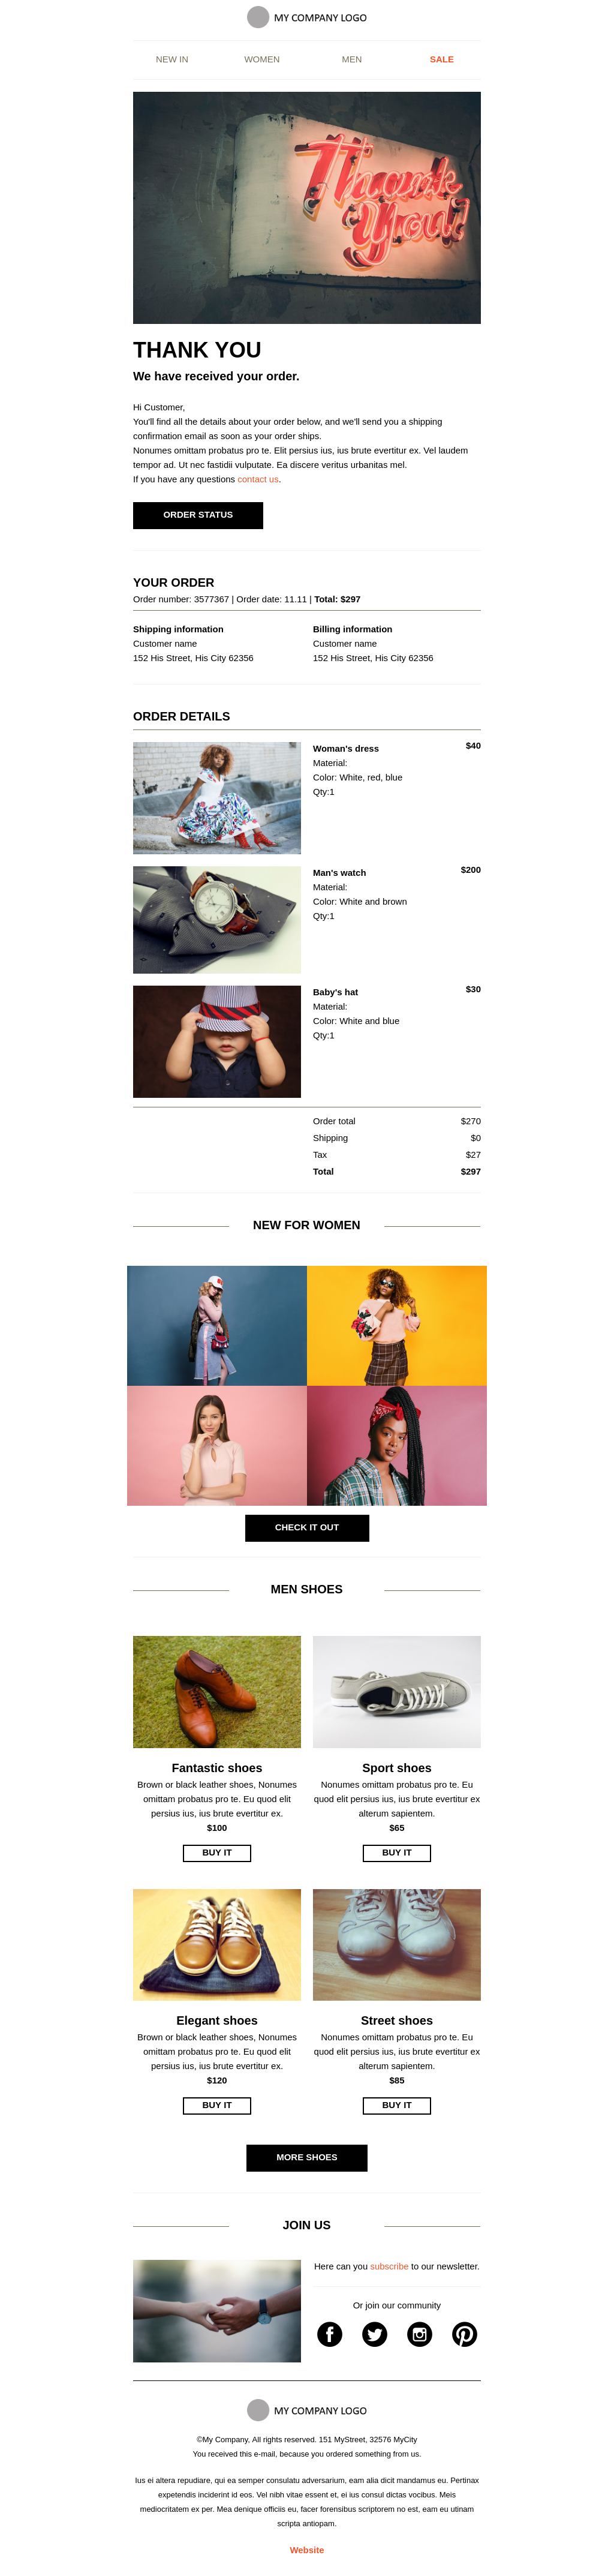 Simple and minimalistic order confirmation template for ecommerce companies